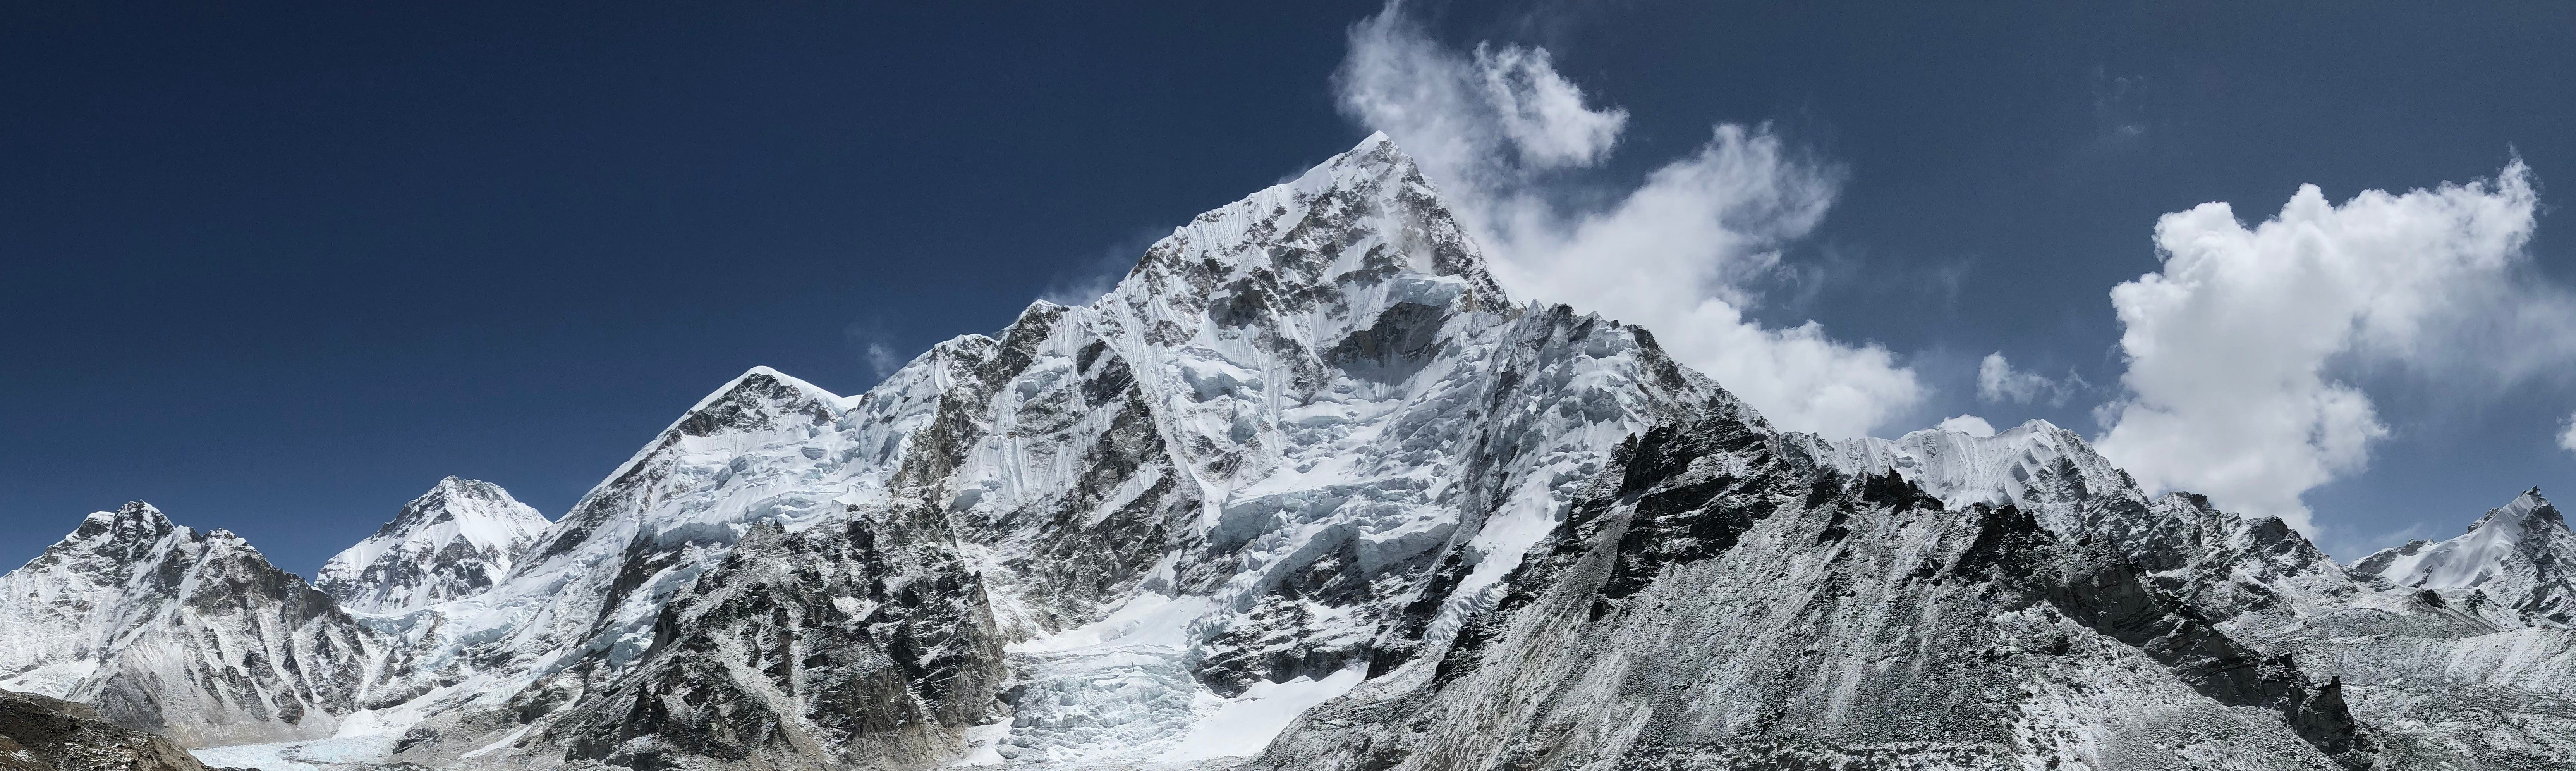 Everest Panorama